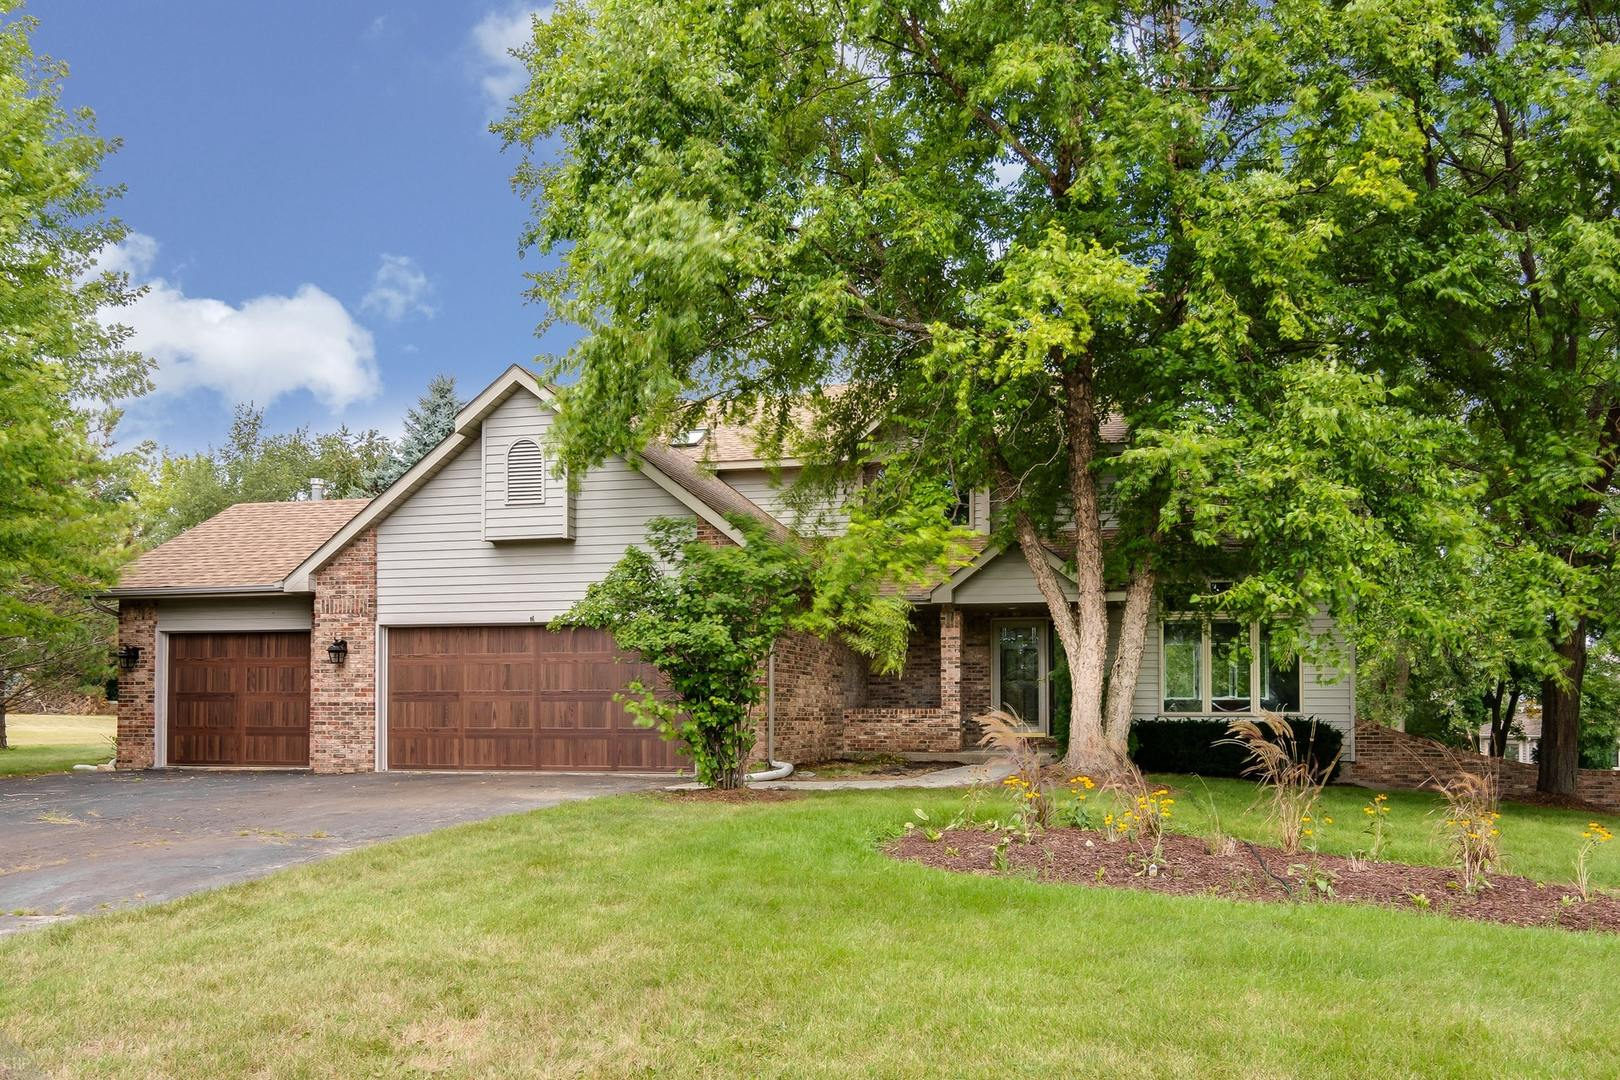 1516 North Applewood Lane, Spring Grove, Illinois 60081